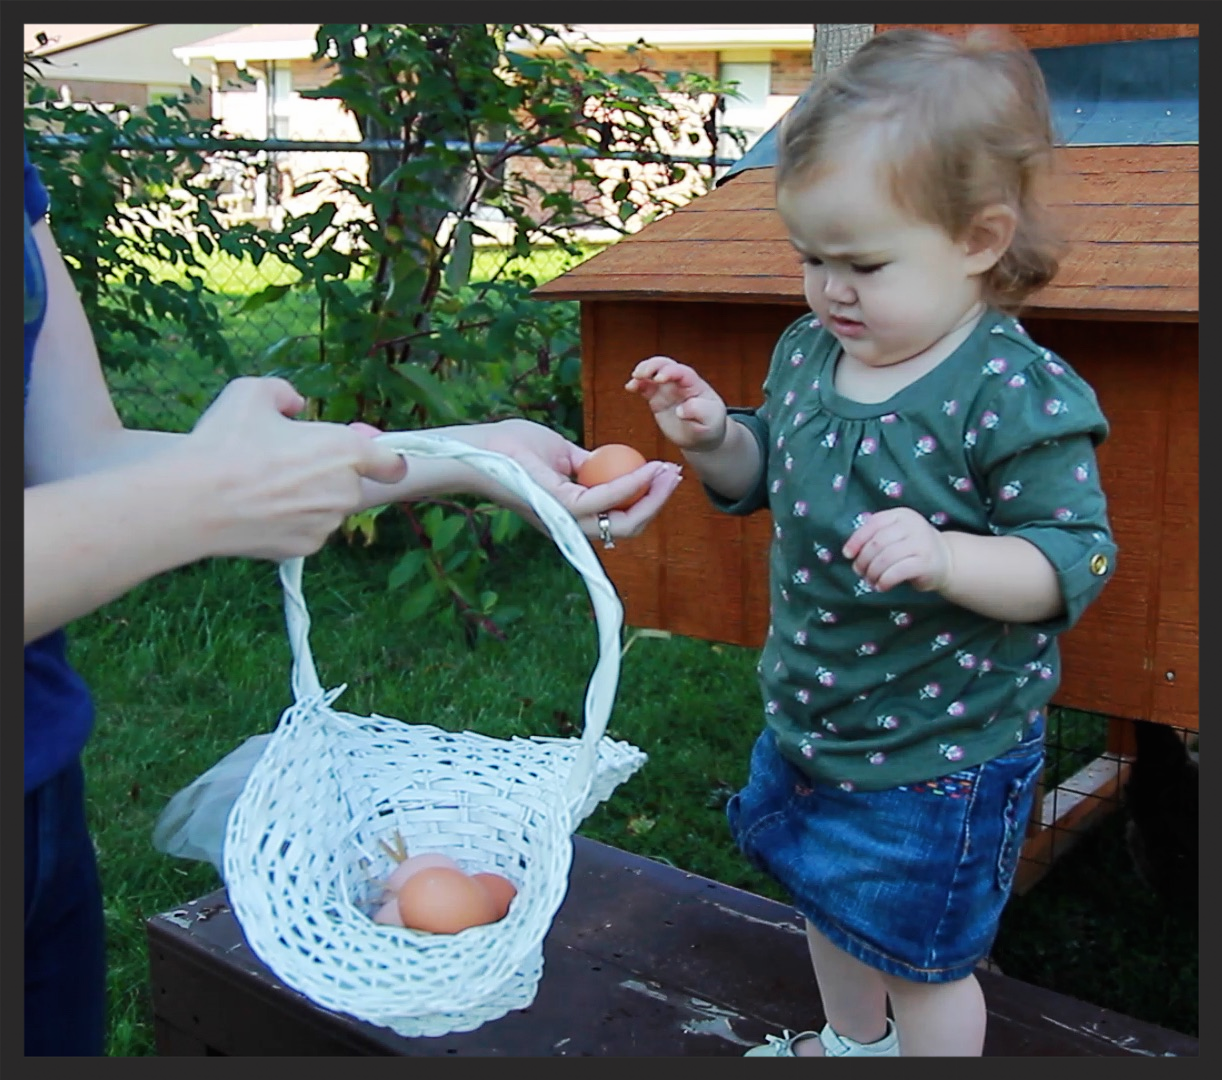 The McBride's youngest, daughter Eleanor Grace, looks over an egg pulled from the family's chicken coop. The McBride's have six hens in their suburban backyard.